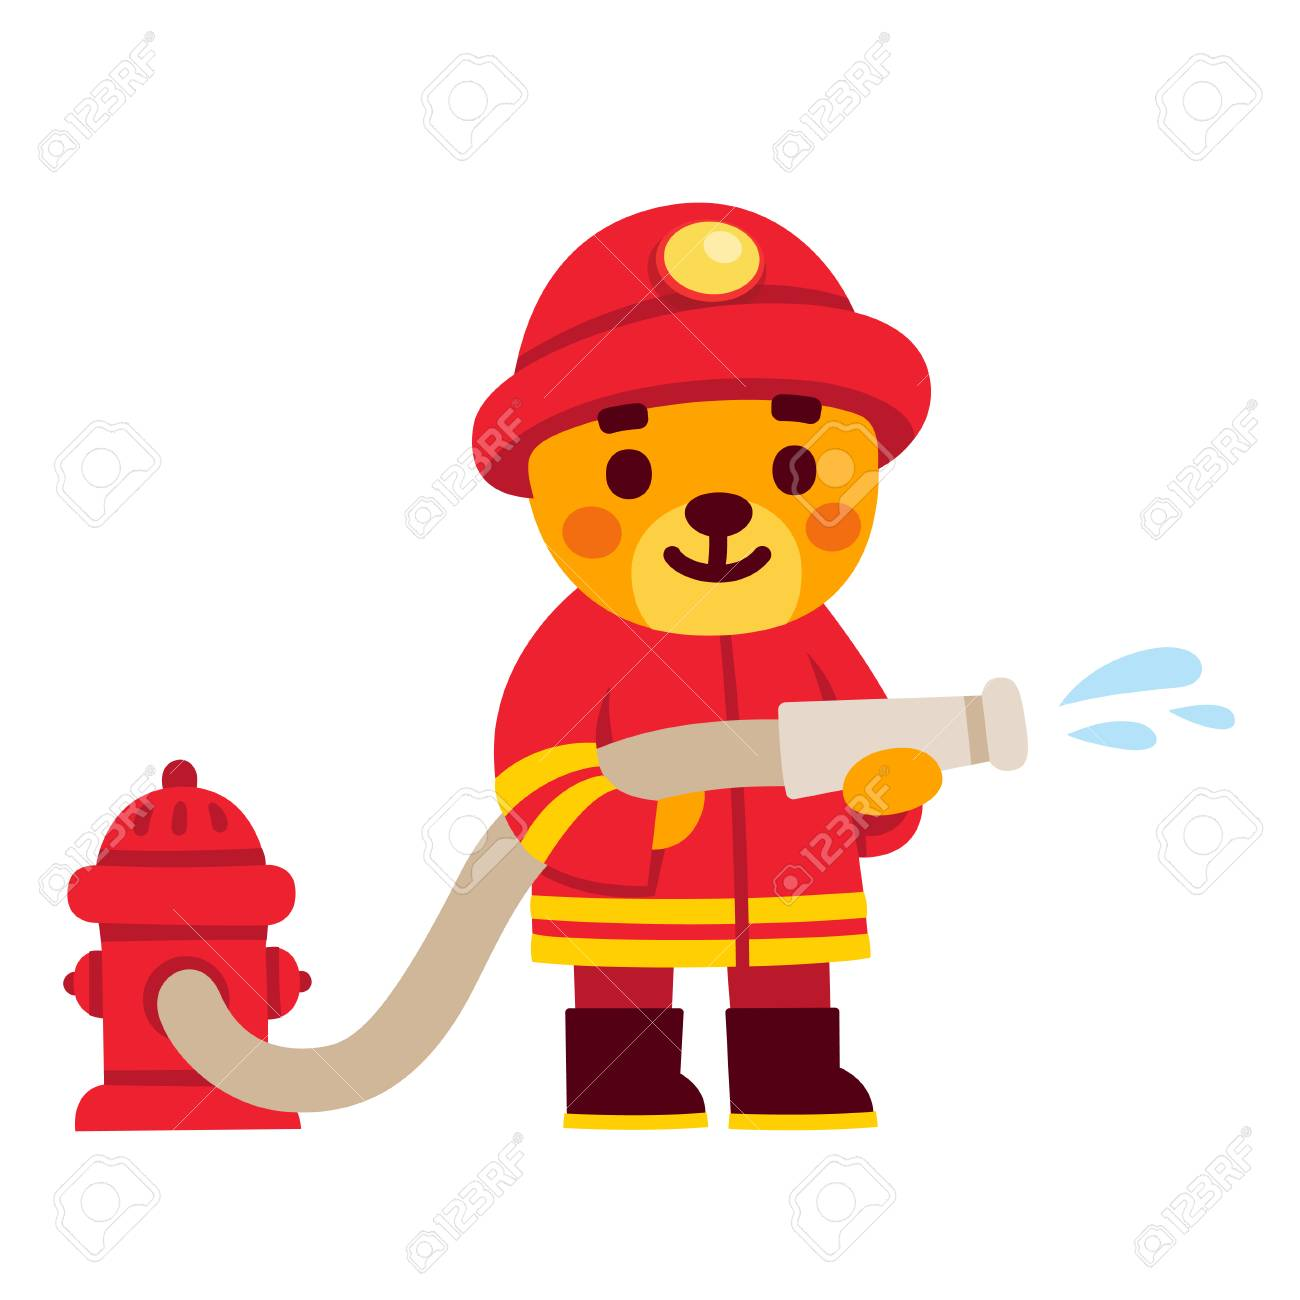 Cute cartoon firefighter character. Teddy bear in fireman uniform with water hose and fire hydrant. Hand drawn illustration. - 92234814